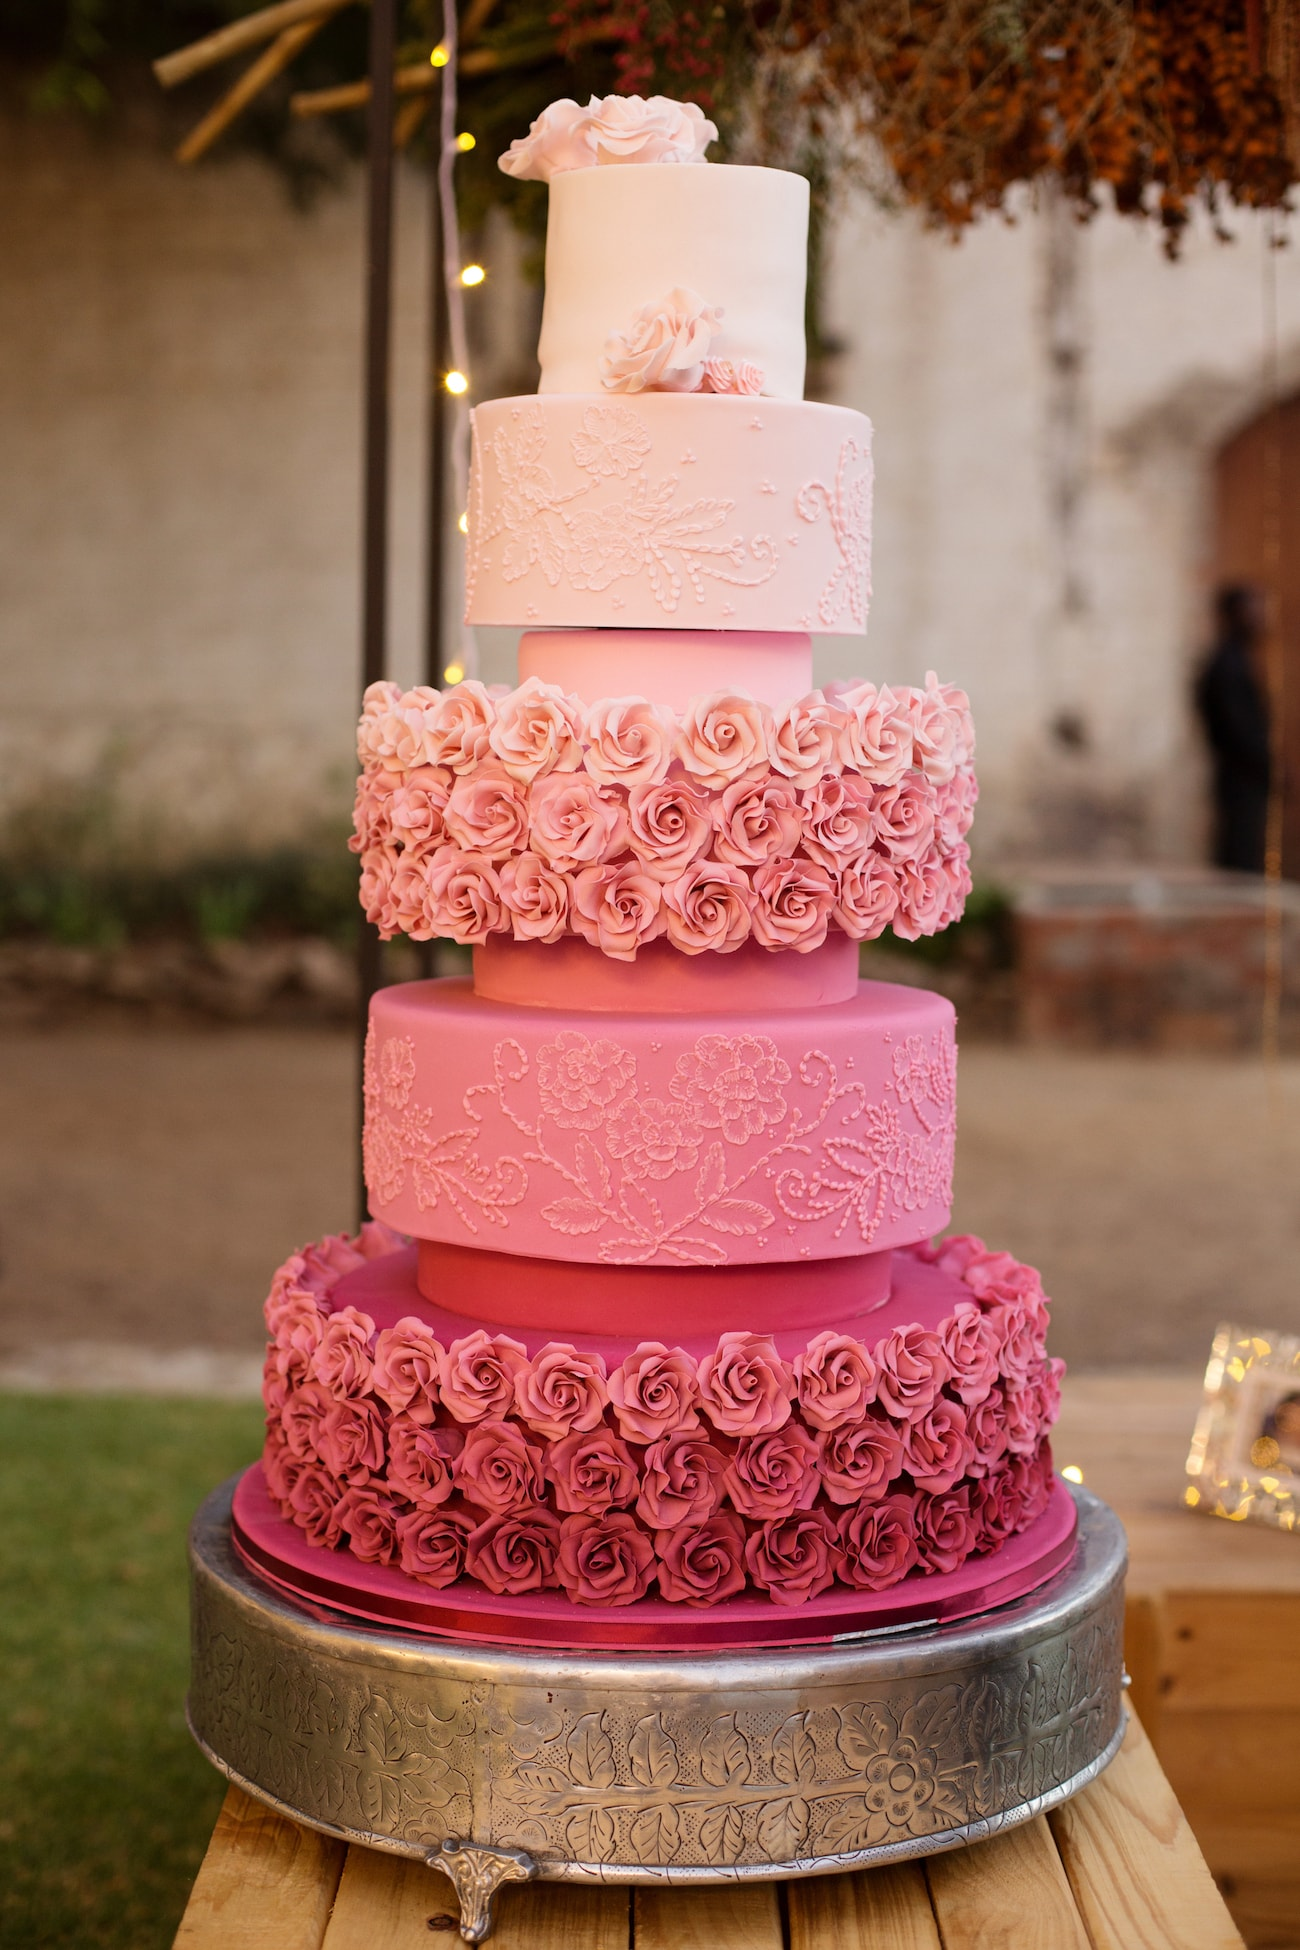 Pink Ombre Wedding Cake | Credit: Vivid Blue